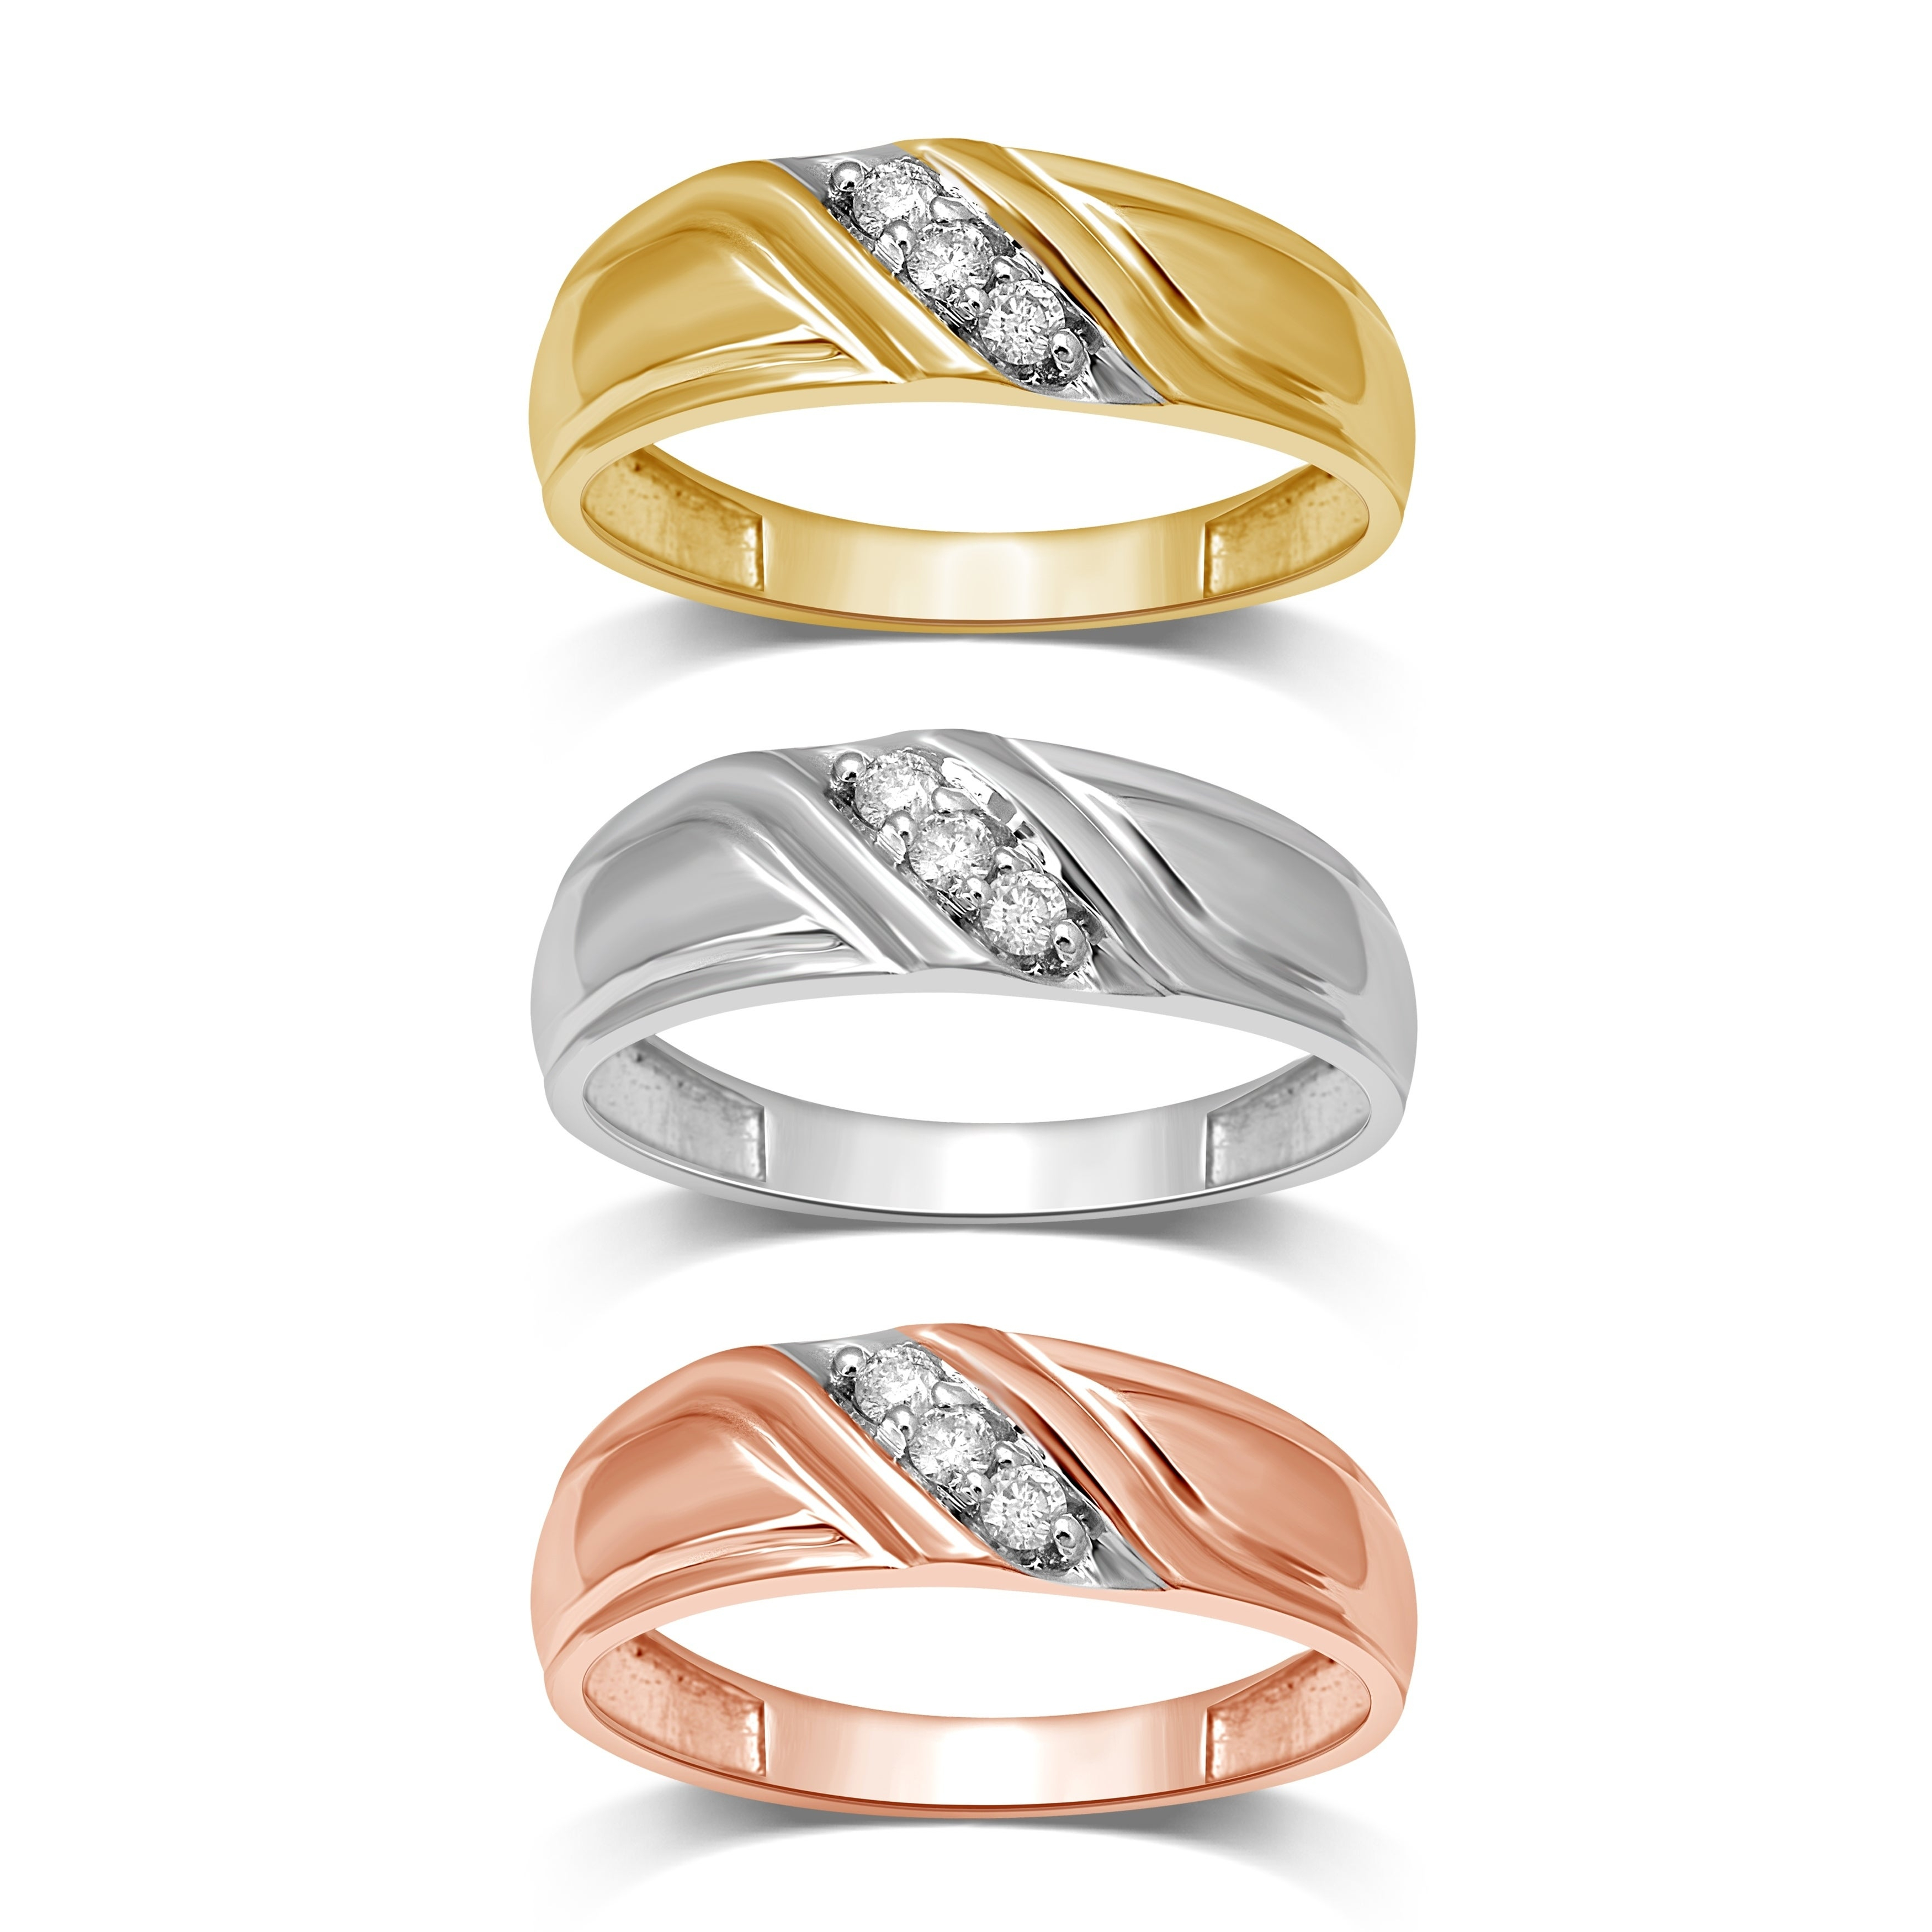 Unending Love Men's 10K Gold 1/10 Ctw Diamond Wedding Band Intended For Most Up To Date Diamond Slant Anniversary Bands In Gold (View 22 of 25)